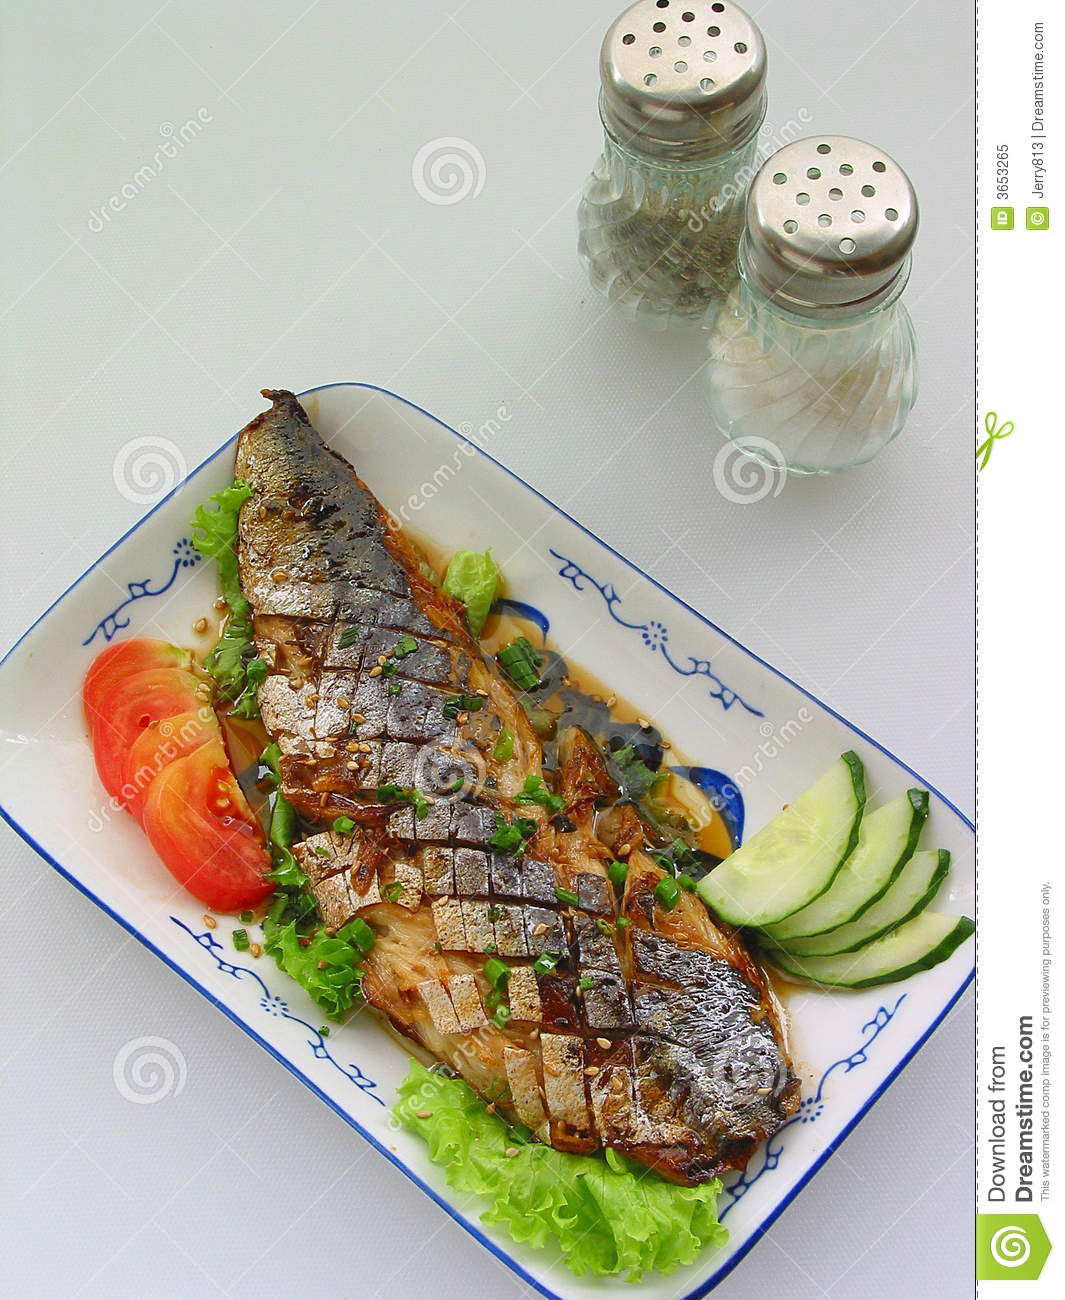 Grilled fish royalty free stock photo image 3653265 for Fish and veggie diet